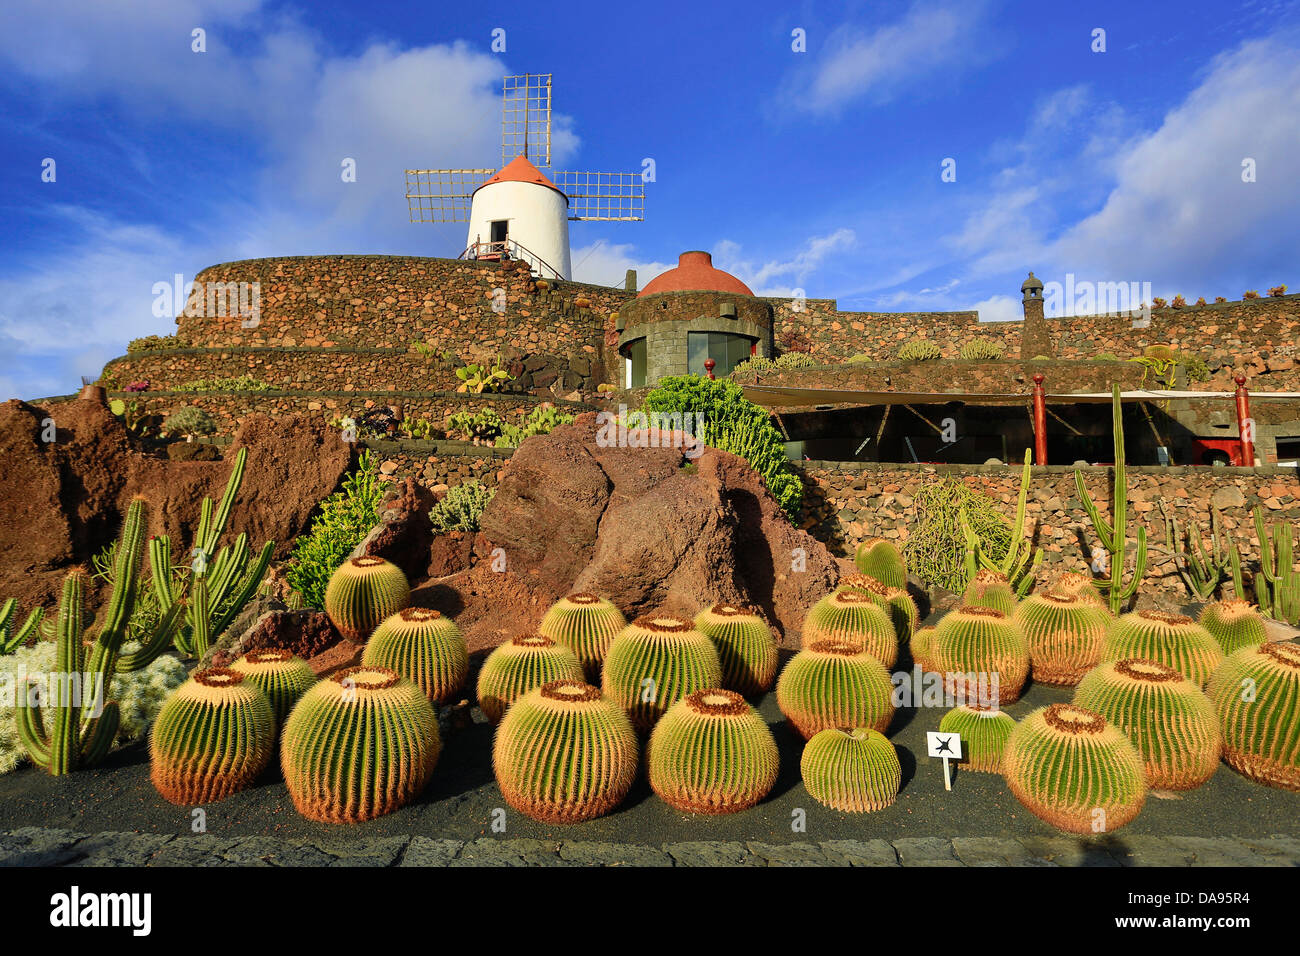 Spain, Europe, Canary Islands, Guatiza, Lanzarote, cactus ...